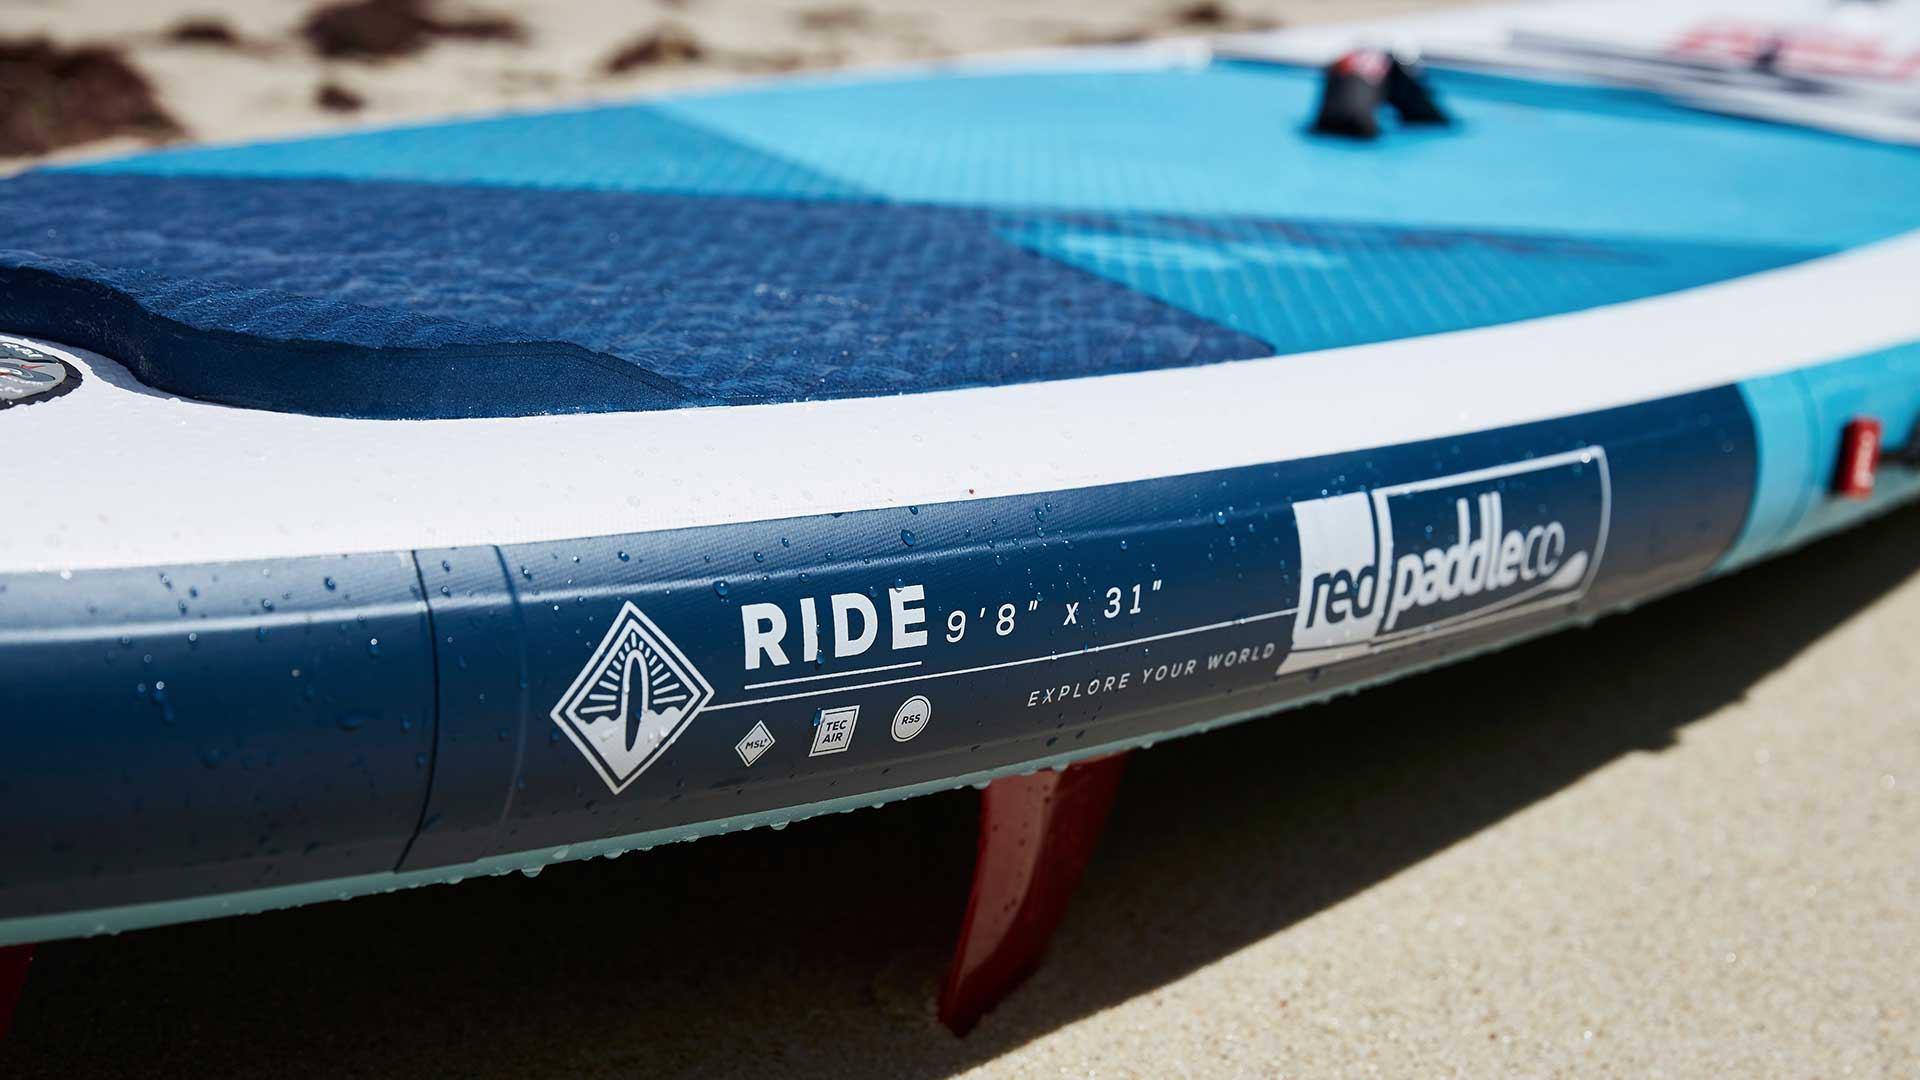 redpaddleco-98-ride-inflatable-paddle-board-desktop-gallery-1